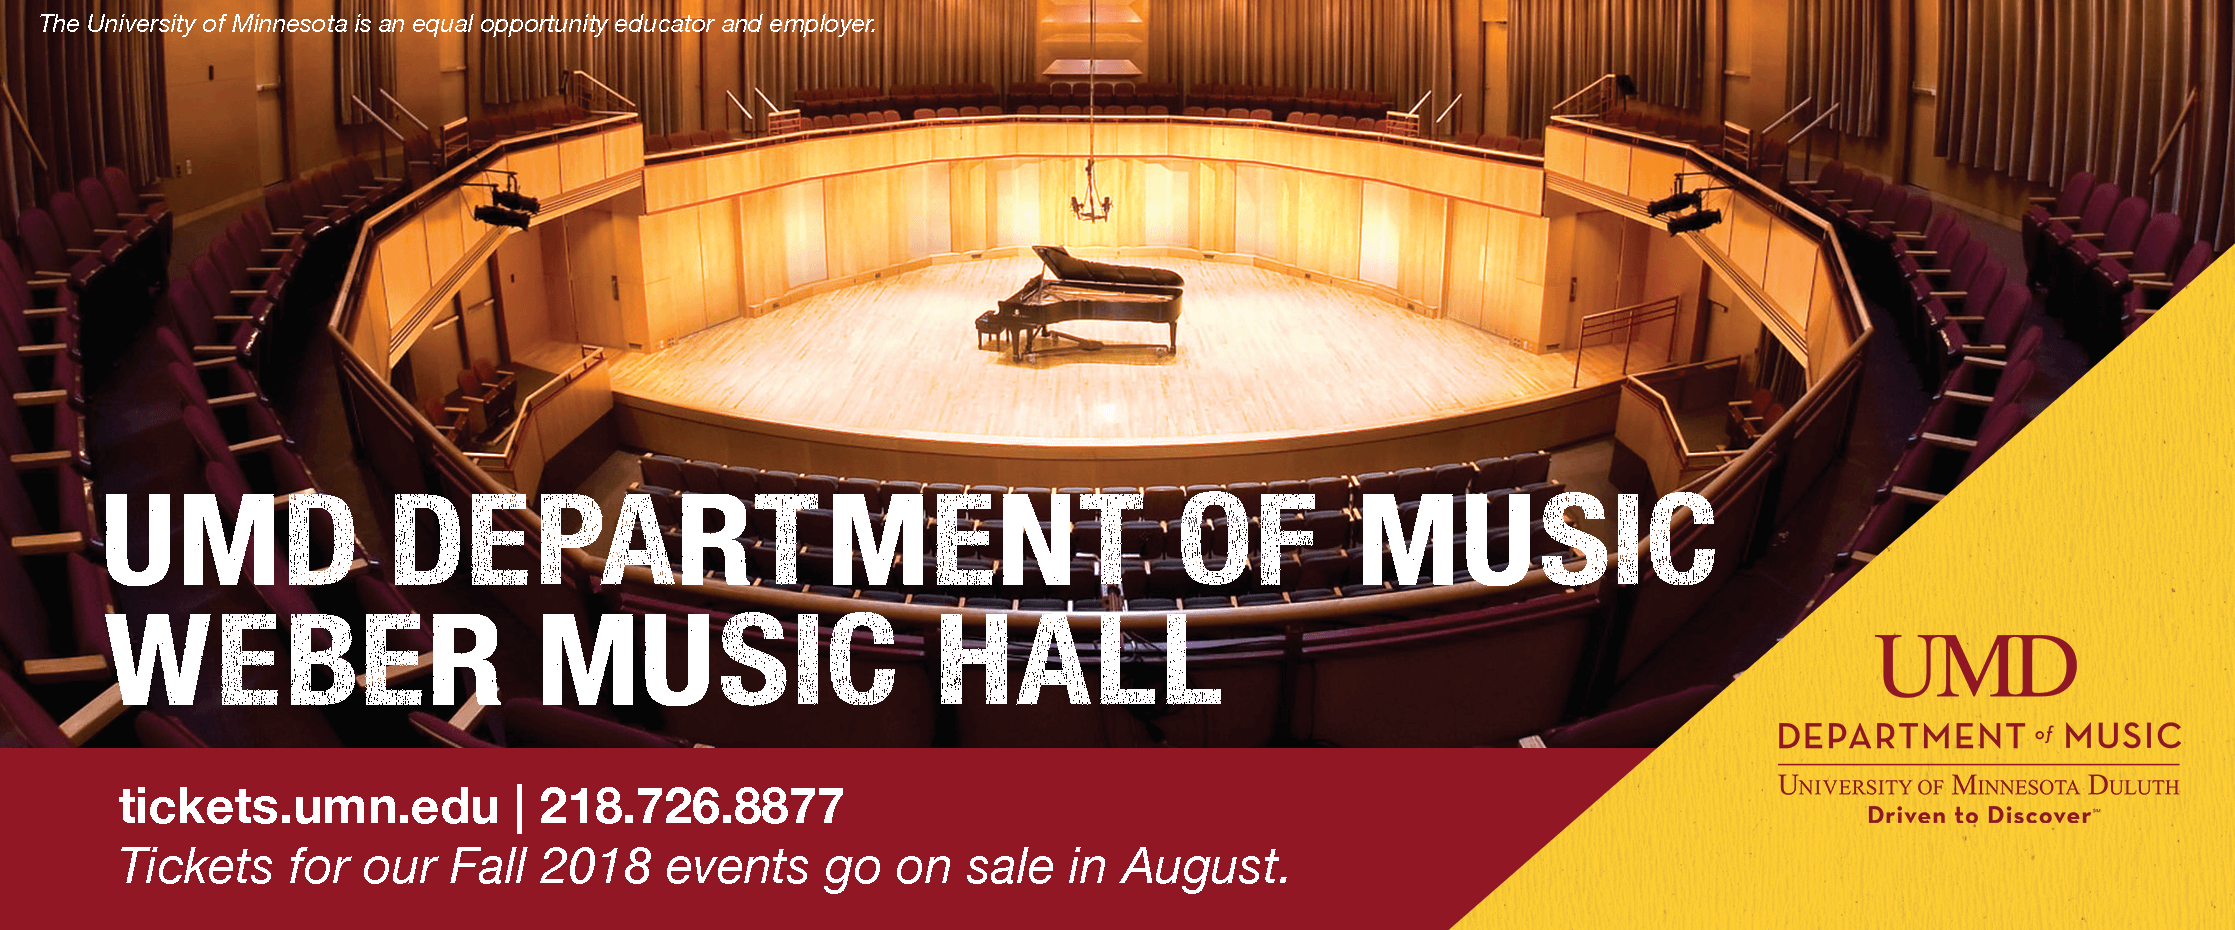 2018-19 Music events on sale in August